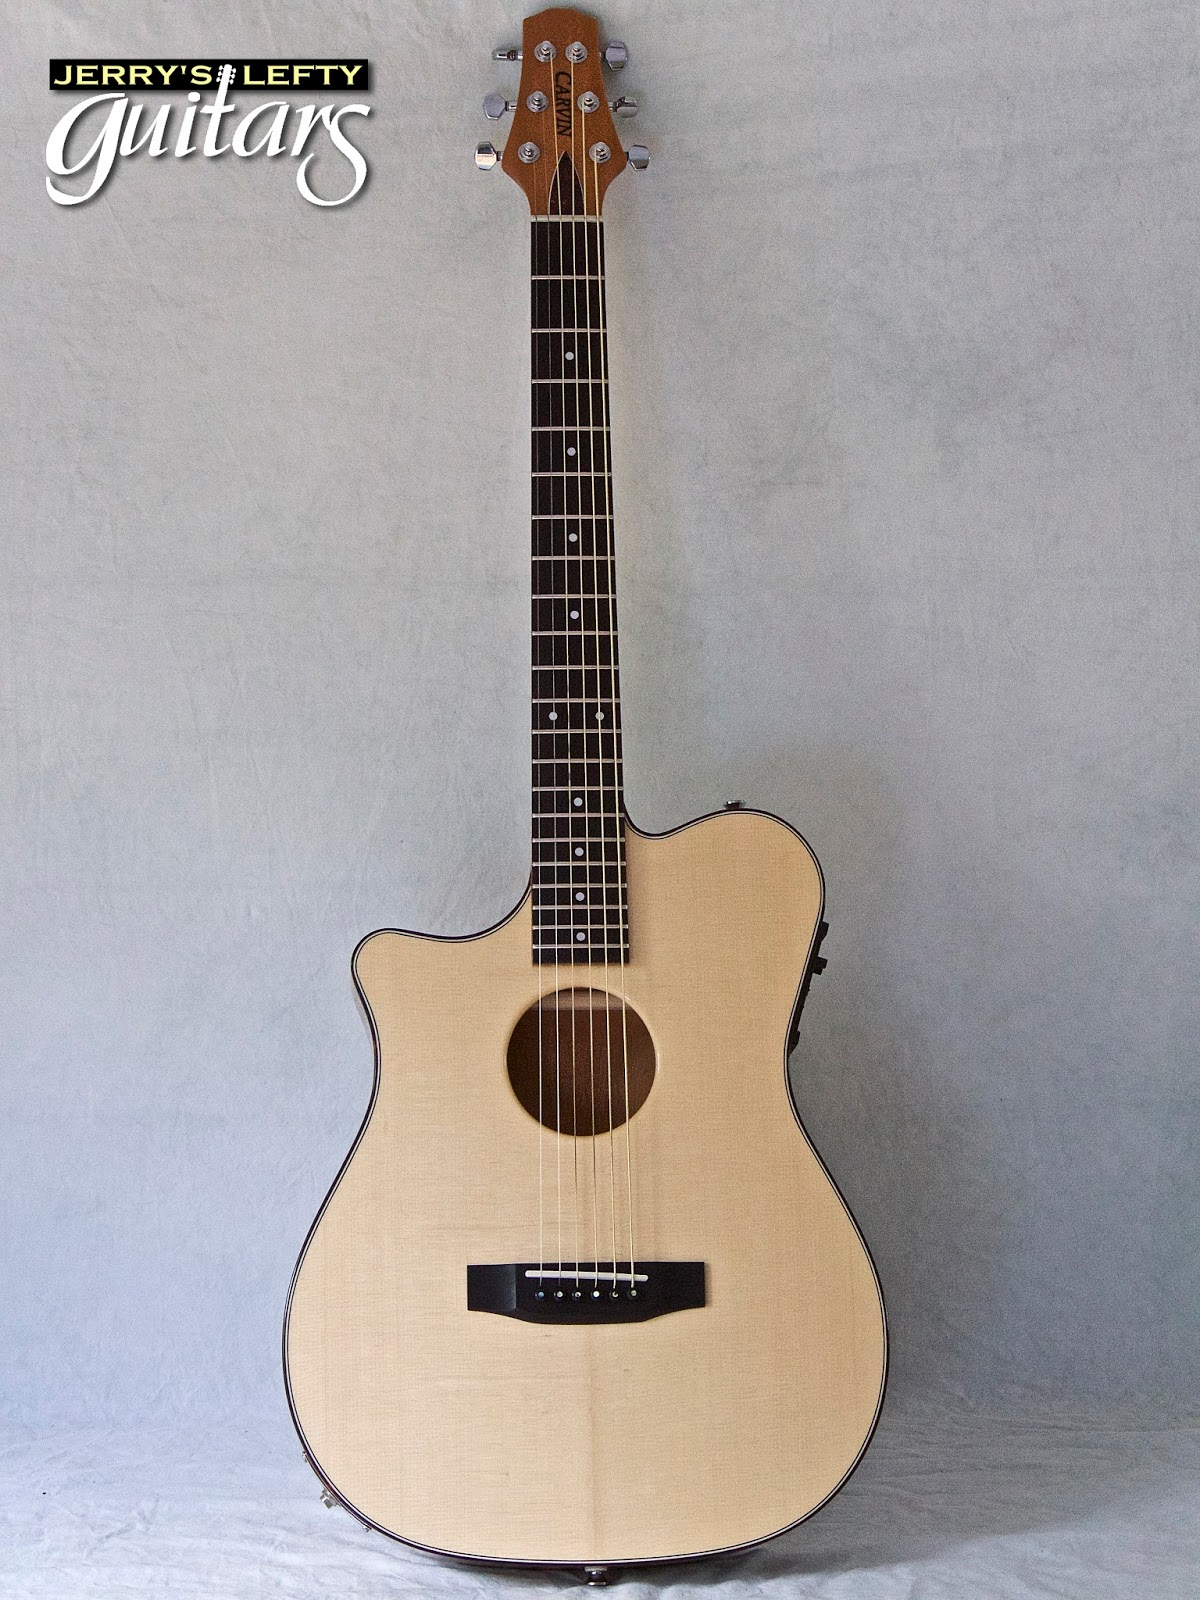 jerry 39 s lefty guitars newest guitar arrivals updated weekly carvin ac275 used left handed. Black Bedroom Furniture Sets. Home Design Ideas